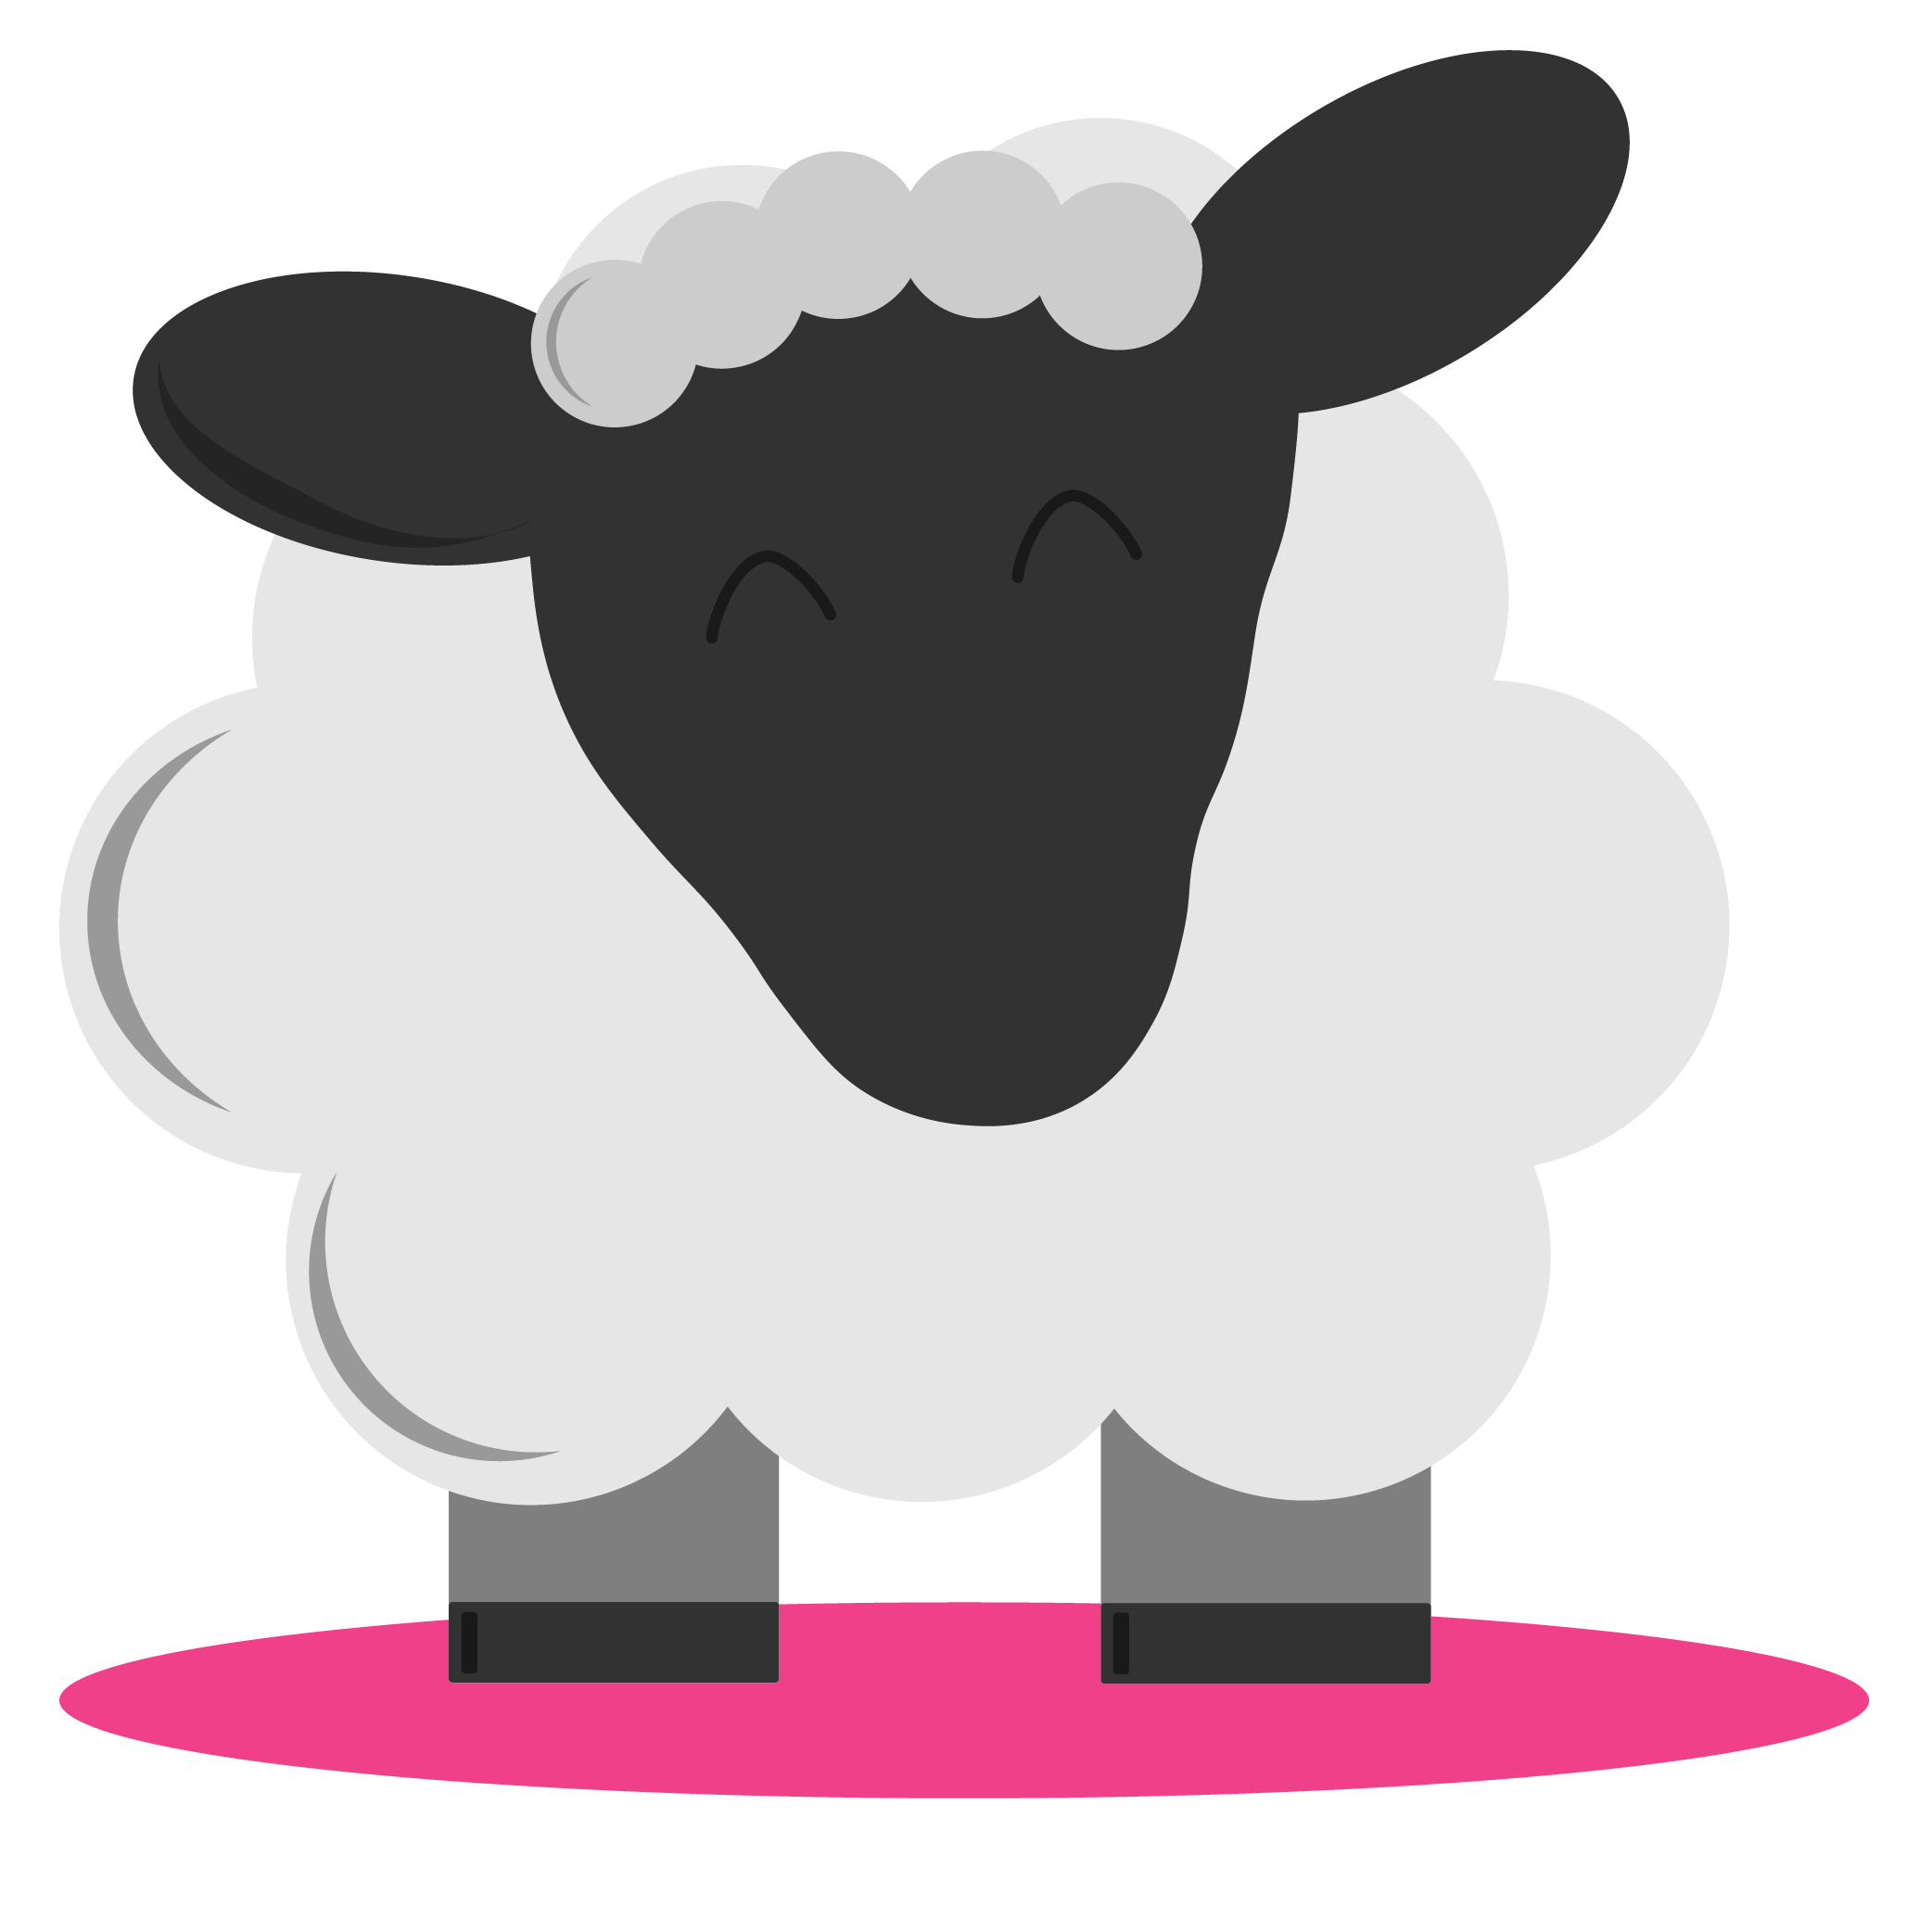 Farm icons hey there. Clipart sheep shadow